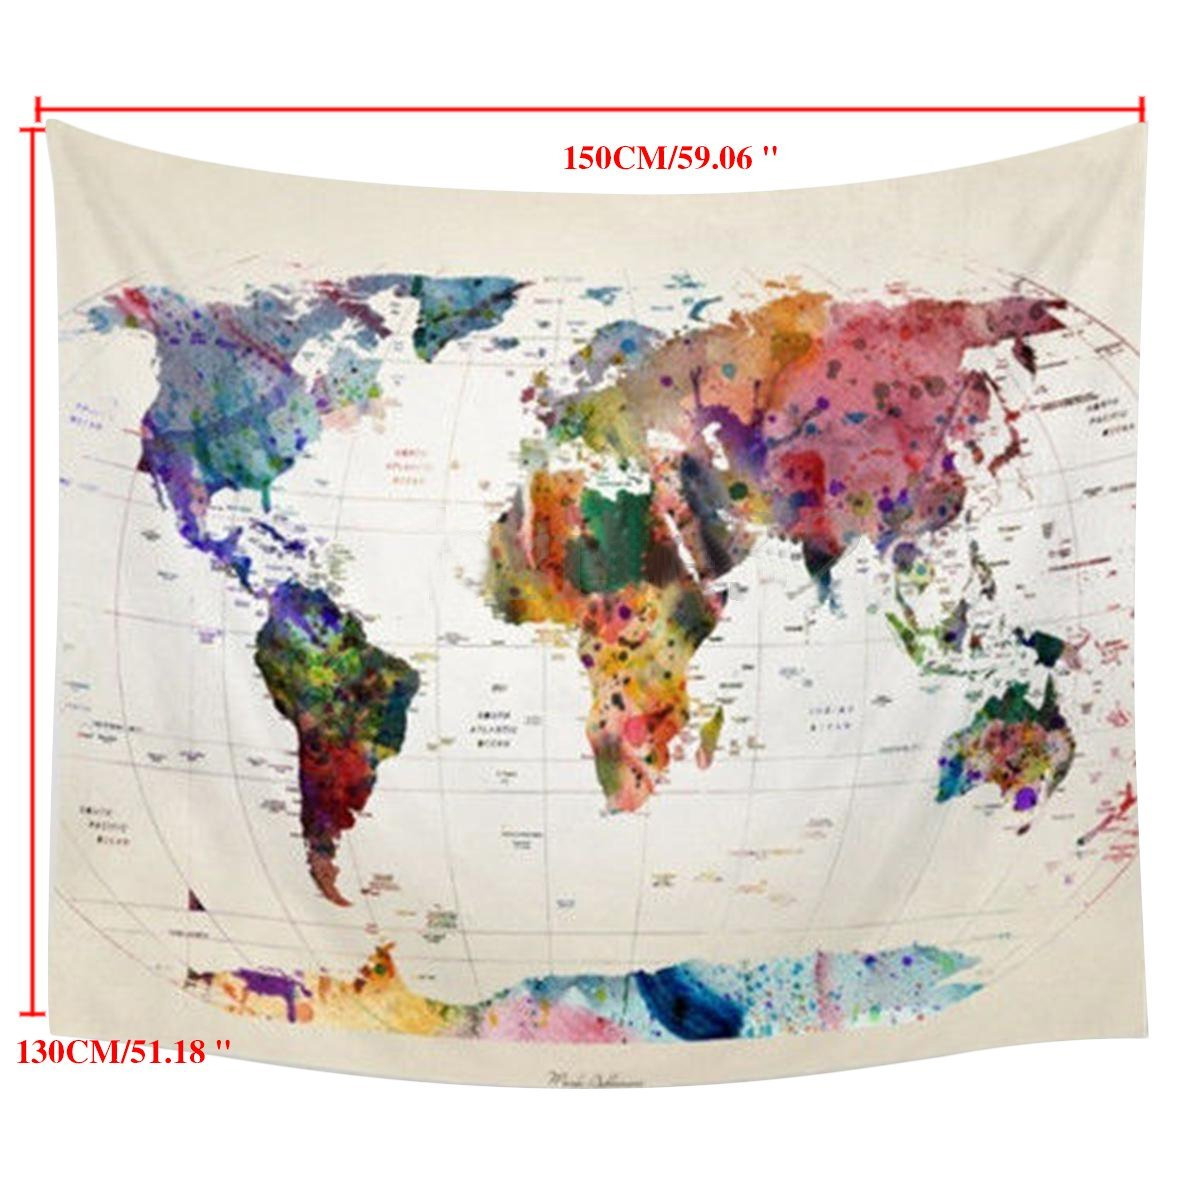 World Map Decorations On Clearance Wall Tapestry Hanging Vintage World Map Tapestry Art Nature Home Decorations For Living Room Bedroom Dorm Decor